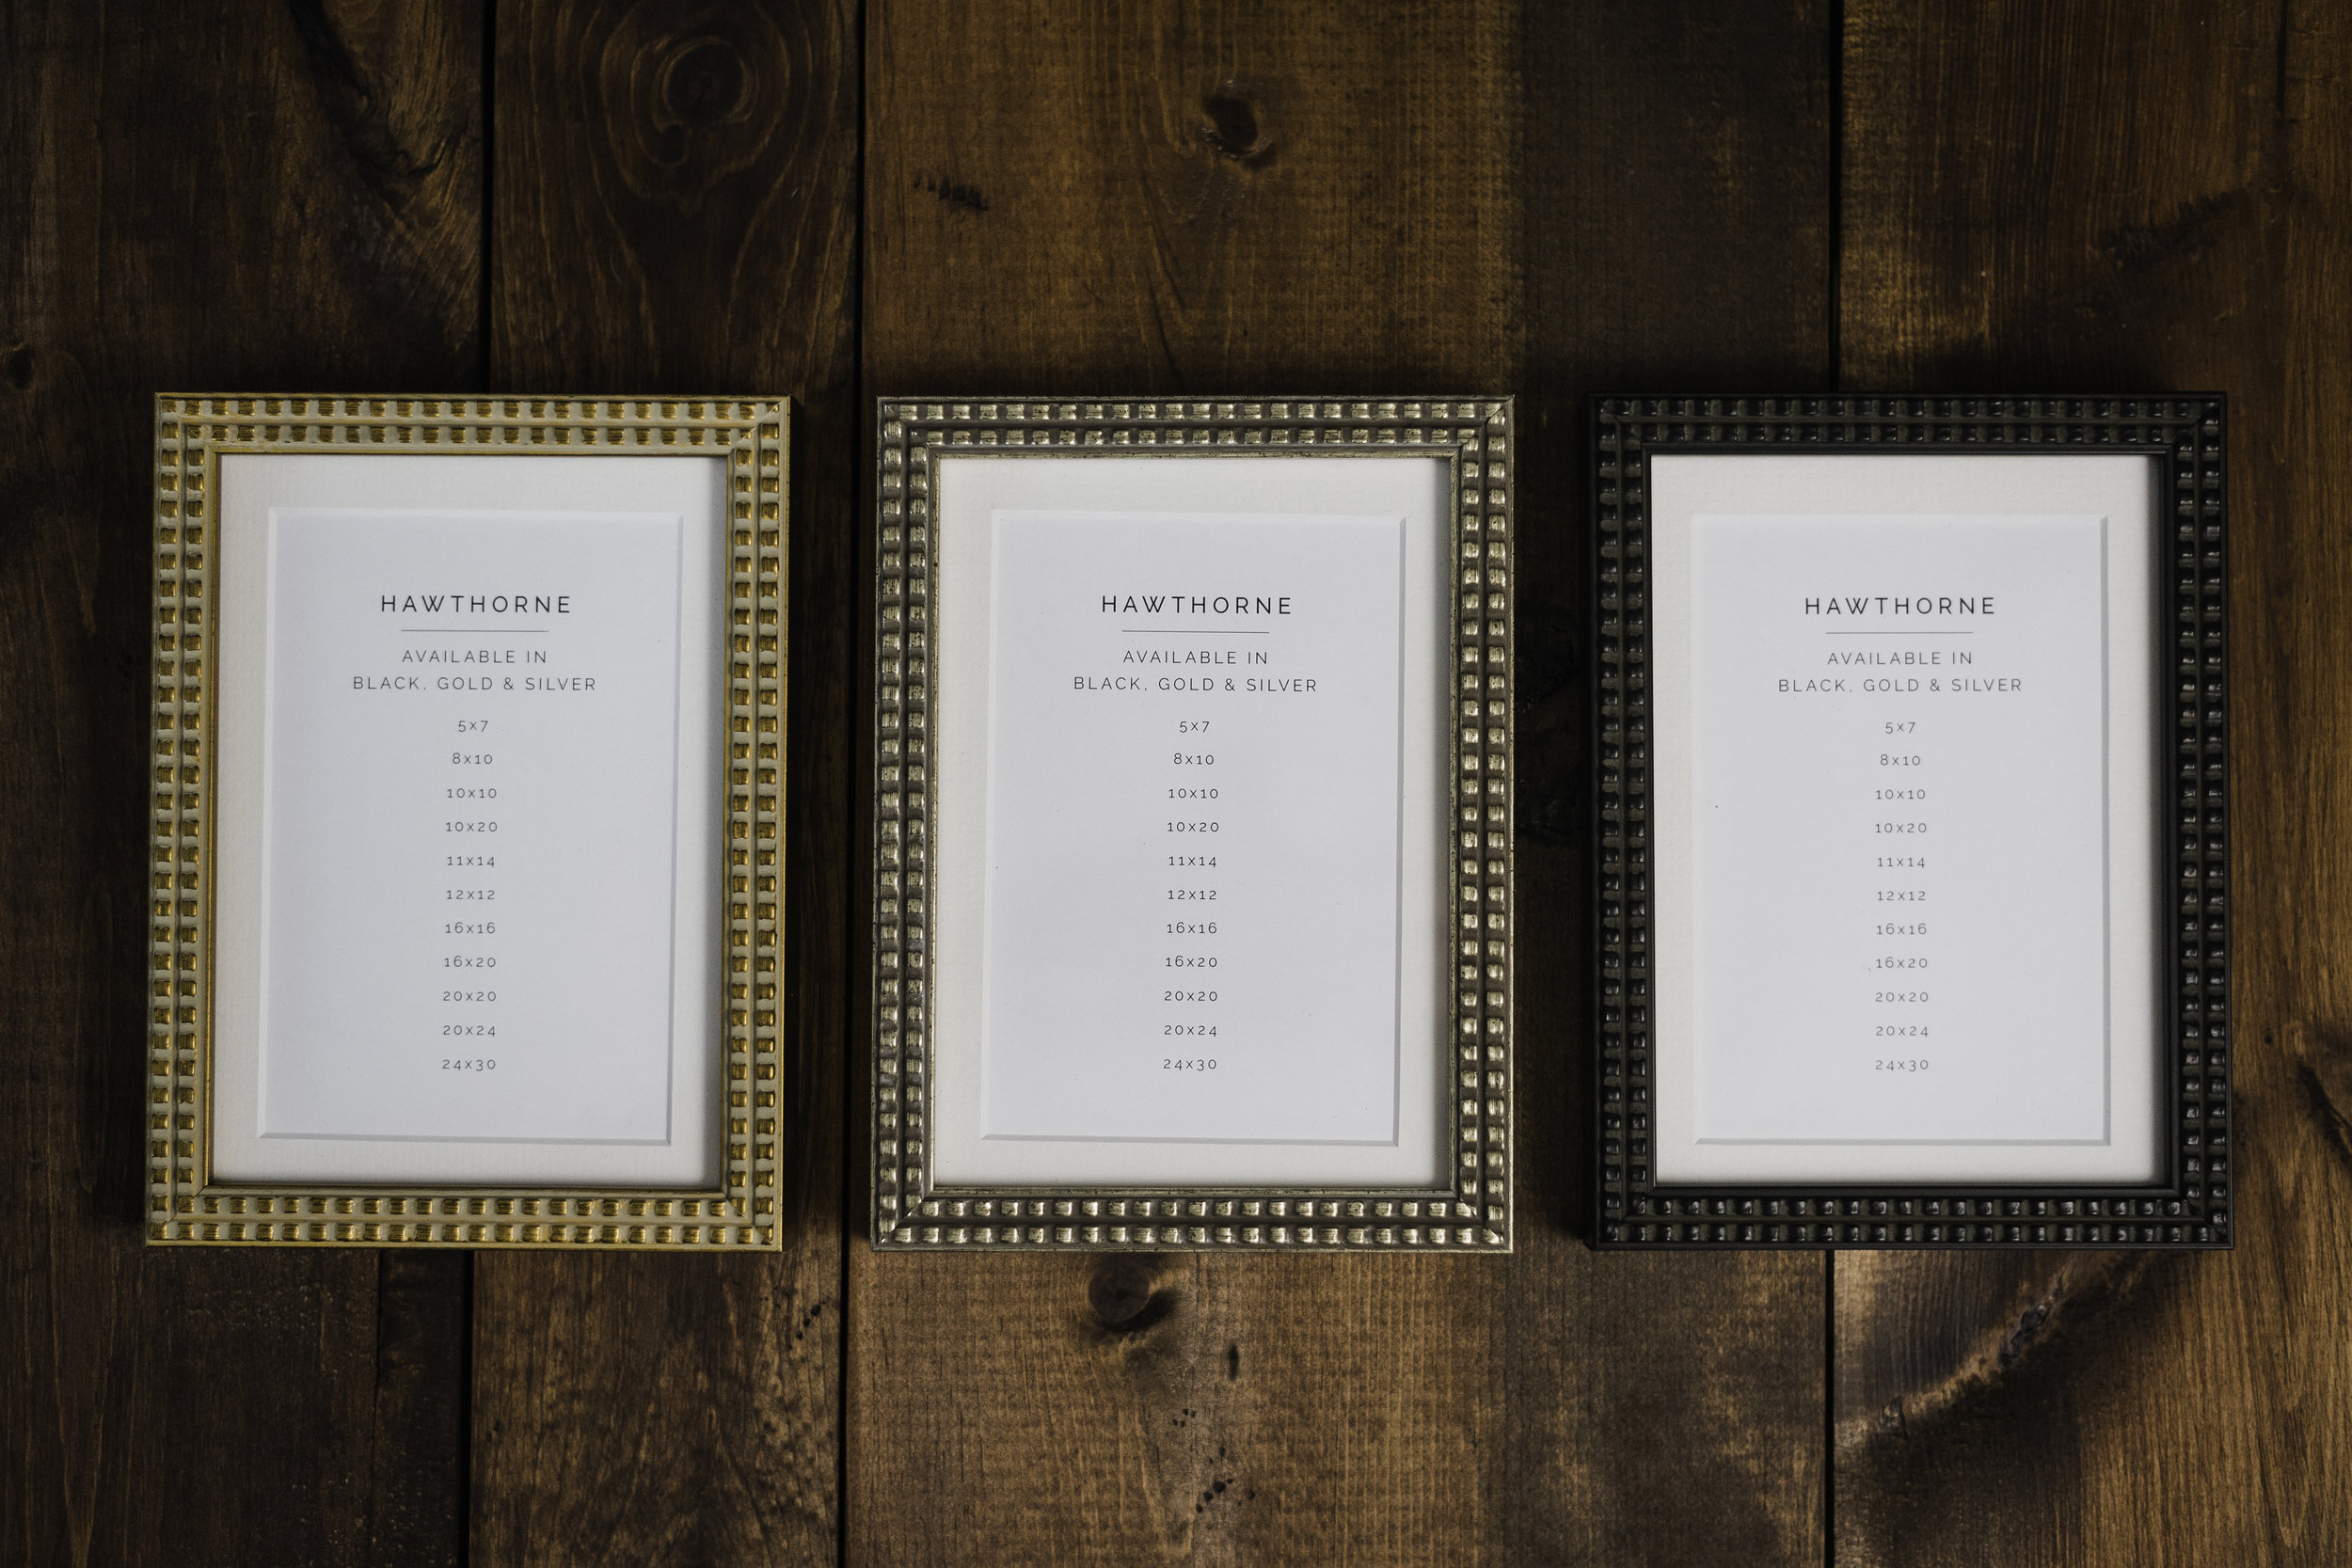 Gold, Black and Silver finish options of the Hawthorne frame collection for 2018 wedding collections with Sisi Connor Photography